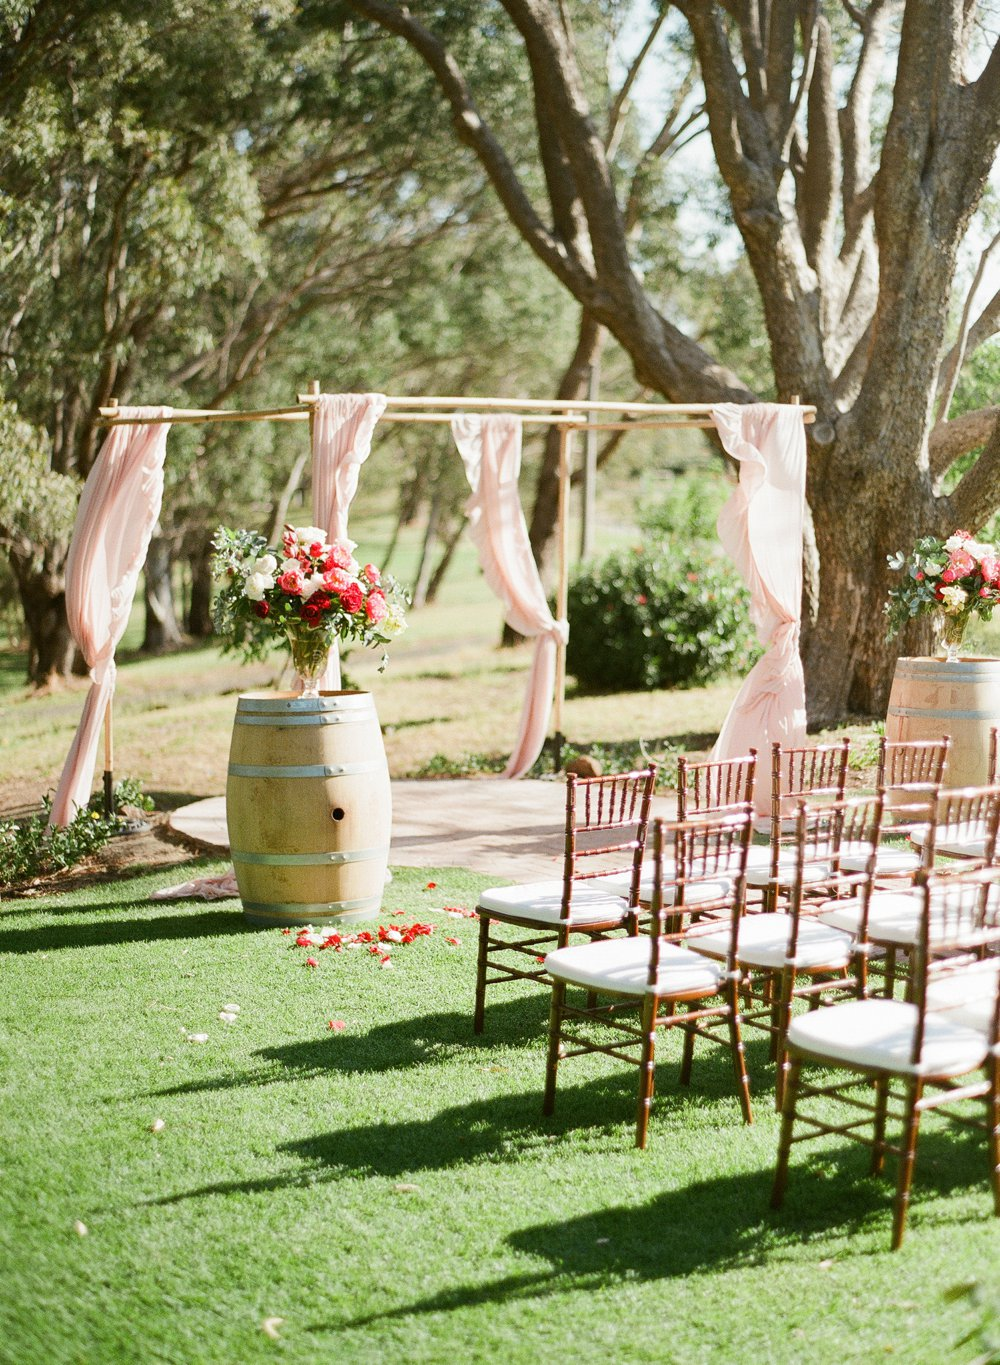 Elegant wedding ceremony at Mandoon Estate with our Bamboo Canopy and tiffany chairs